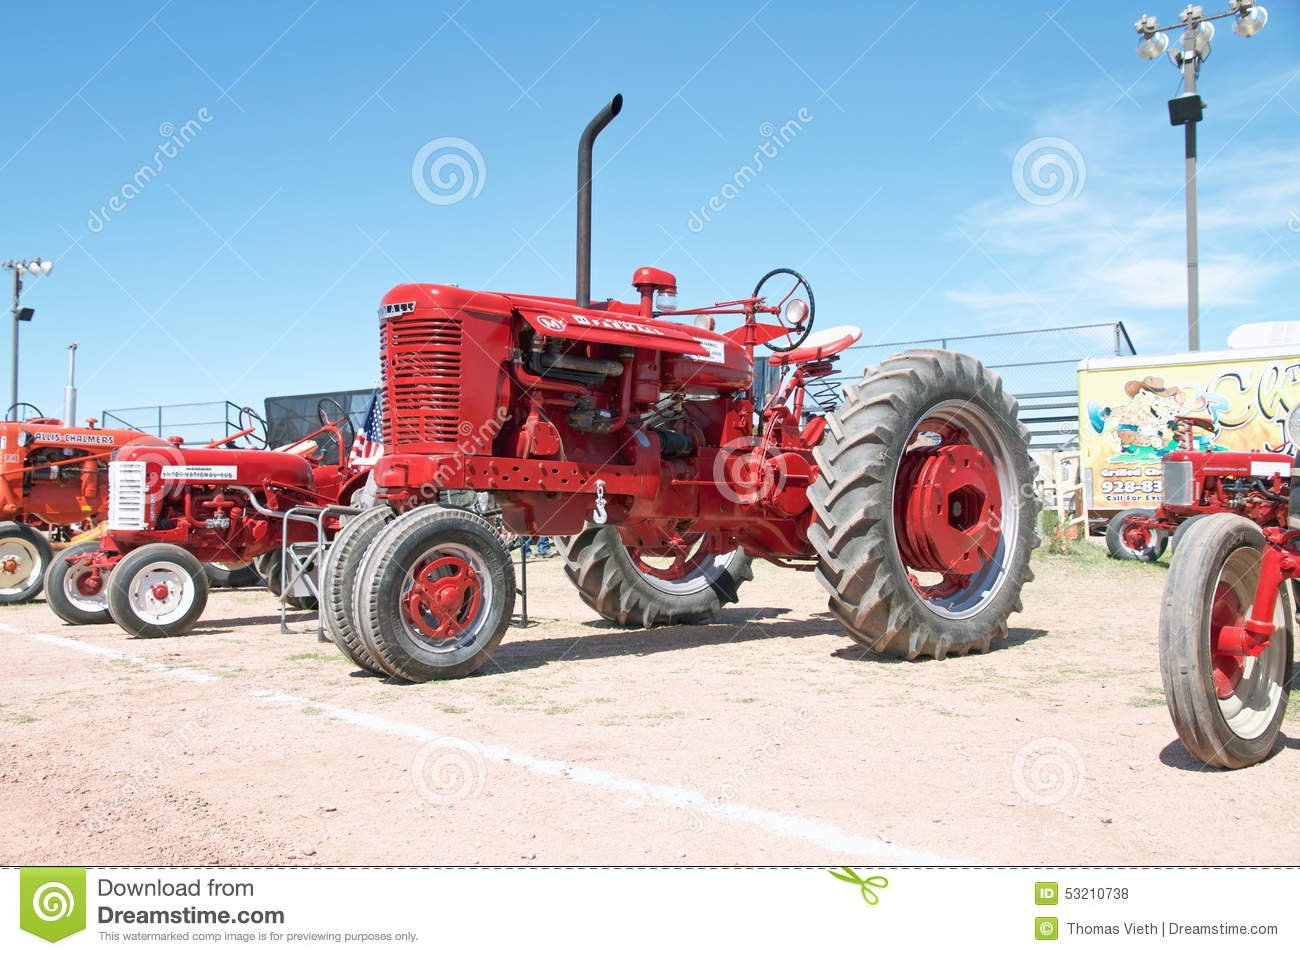 The Best Tractor Massey Ferguson Ever Made in addition Viewit in addition Gallery image php in addition Watch also Bell Housing New Cummins 4b 4bt 4bta 6b 6bt 6bta 3903282 4947579 4948019 1209. on oliver tractor engine